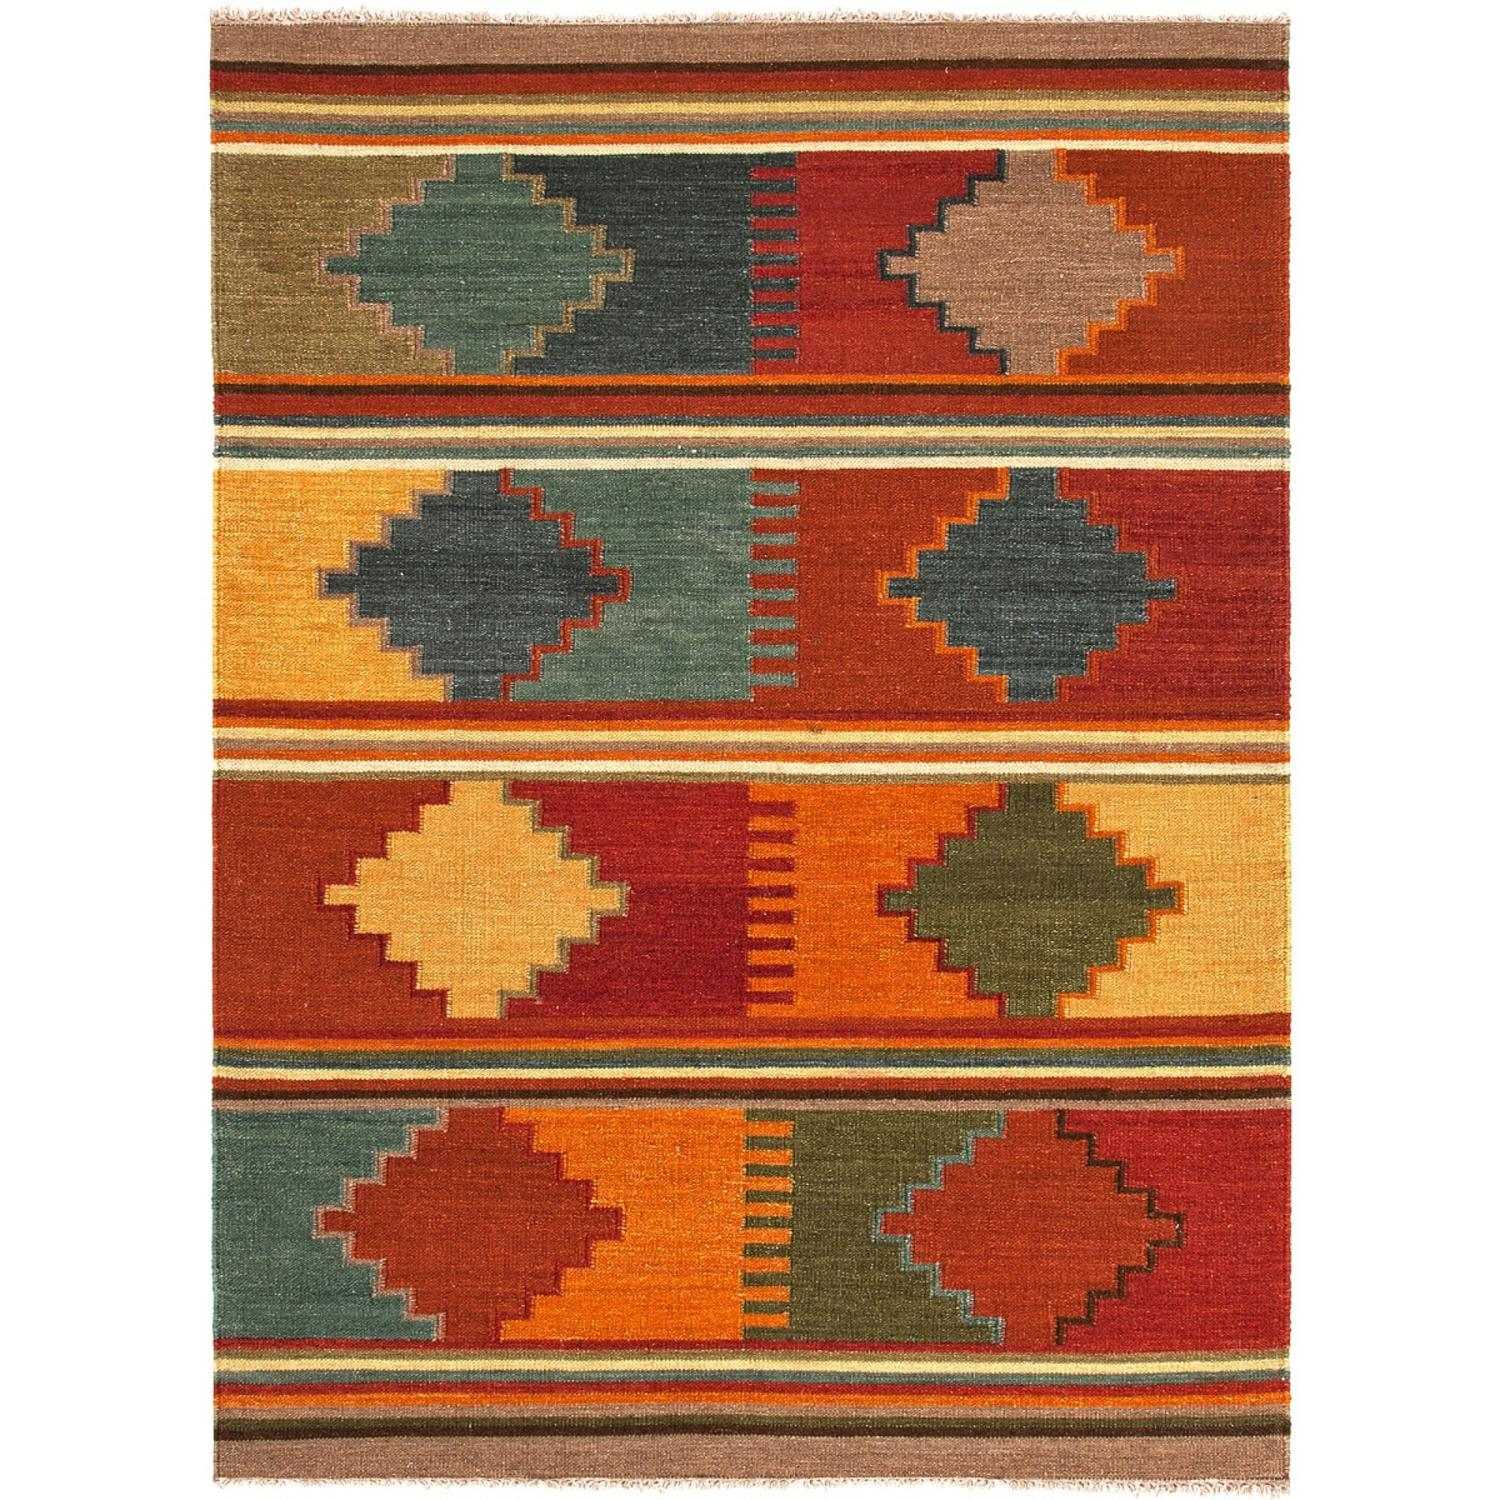 5' x 8' Multi-Color Byzantium Flat Weave Hand Woven Wool Area Throw Rug